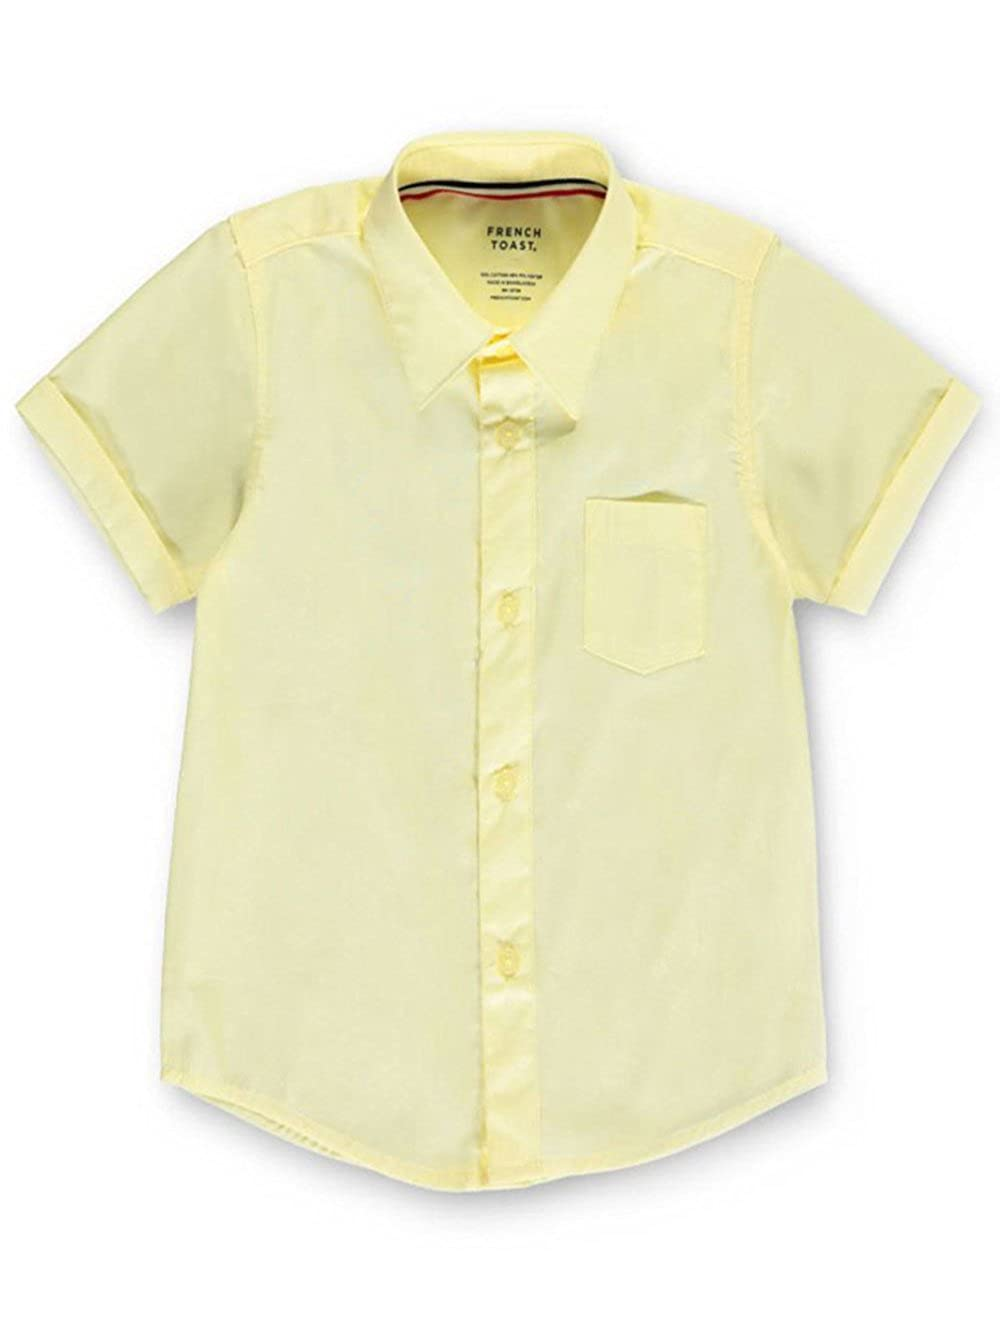 French Toast Unisex S/S Button-Down Shirt - yellow, 12